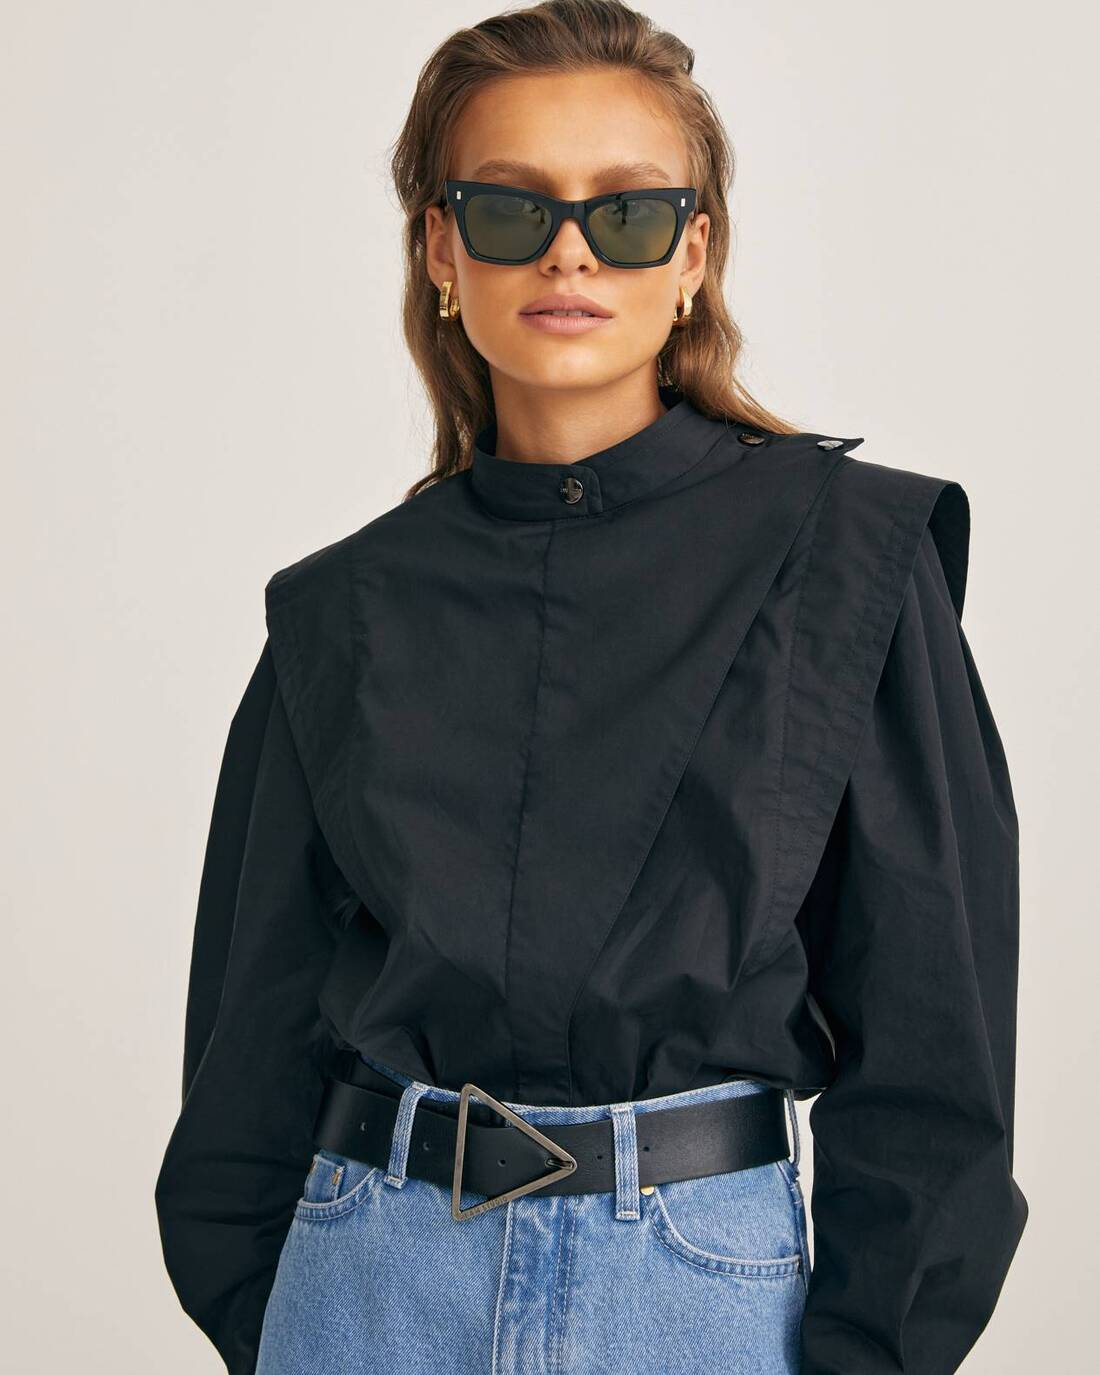 Blouse with voluminous sleeves and a band collar